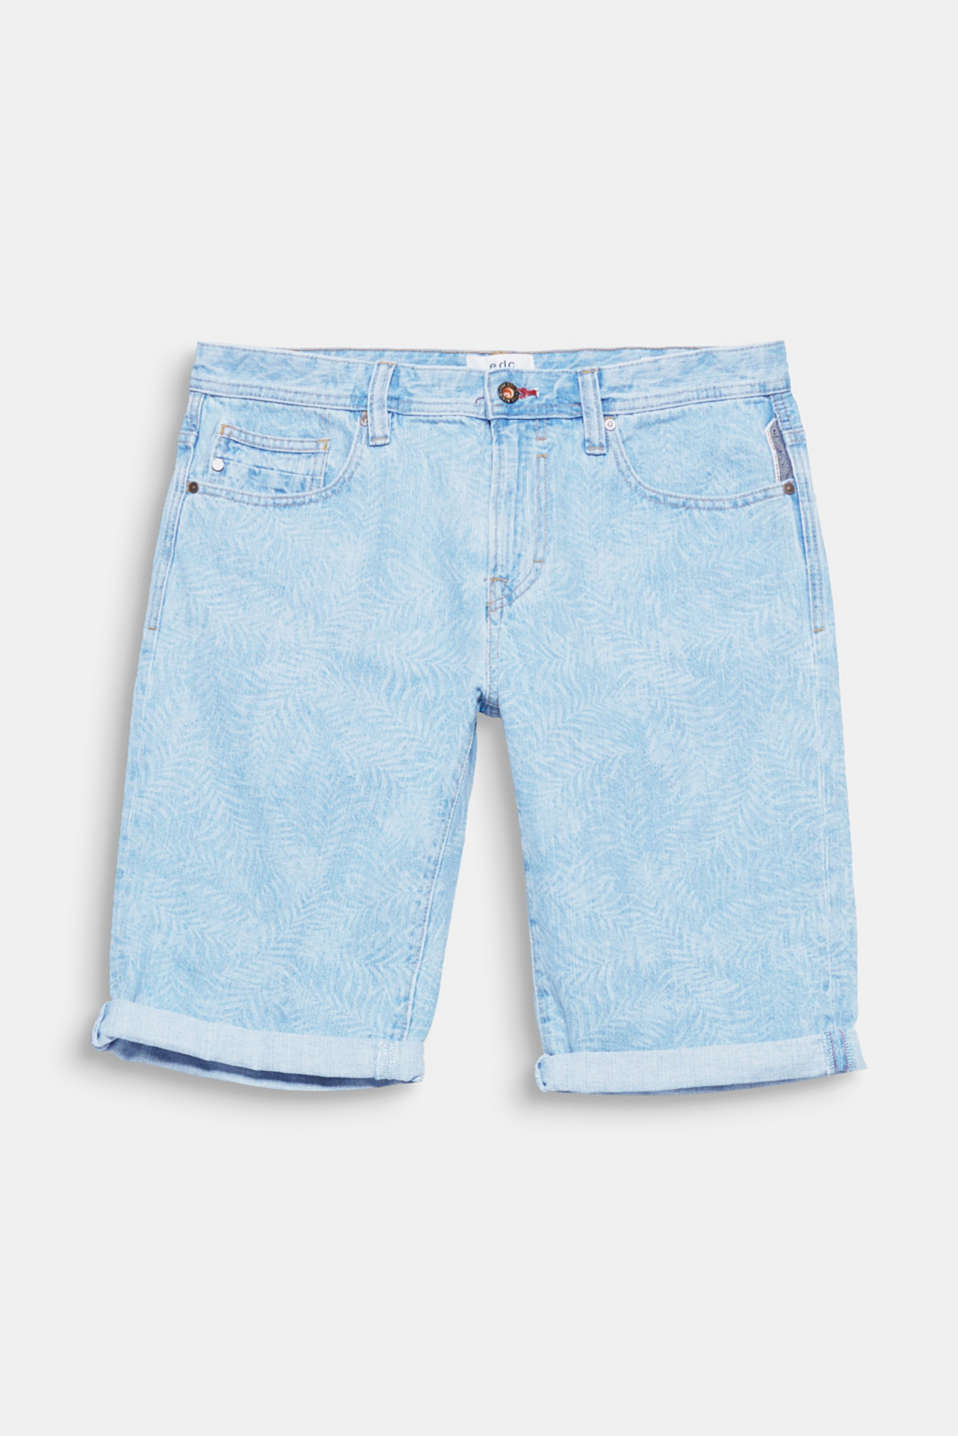 We love denim! The bleached outer surface makes these shorts look absolutely stunning.